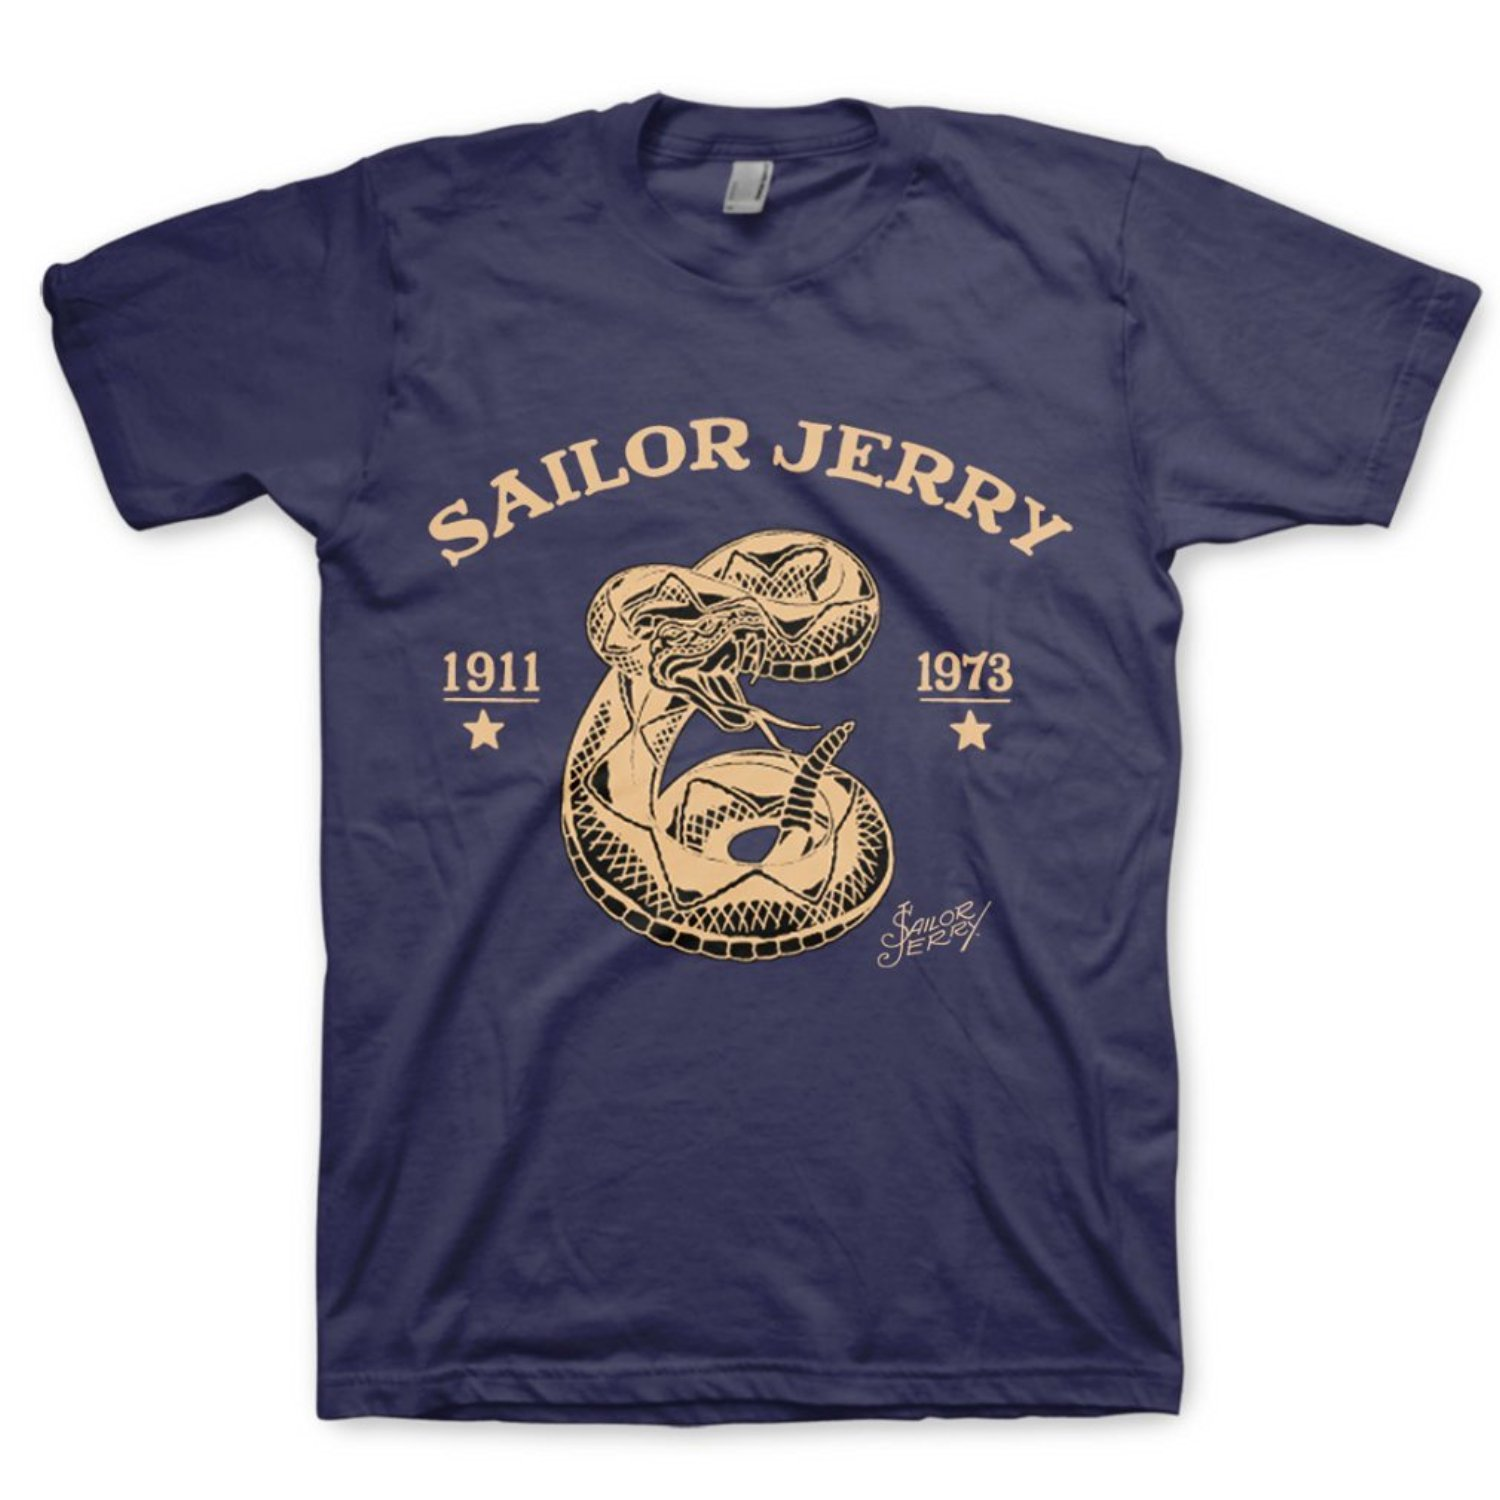 Sailor Jerry Shirt